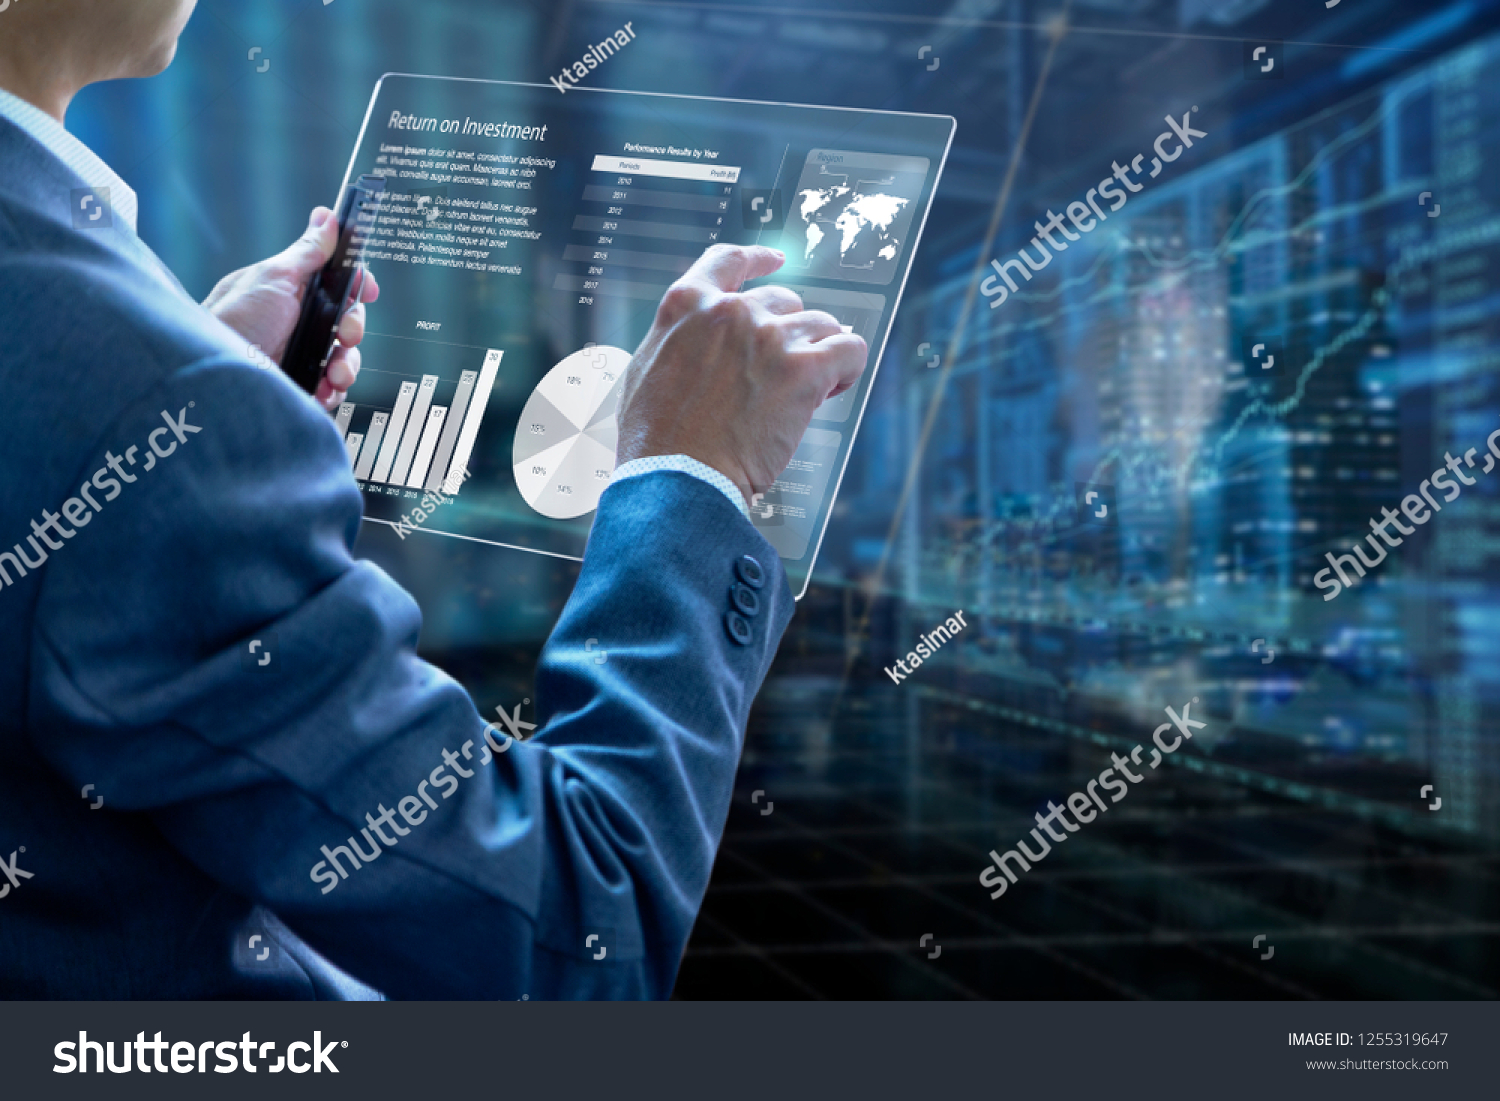 Businessman holding a modern tablet touch screen analysing on investment risk management and return on investment analysis or business performance. #1255319647